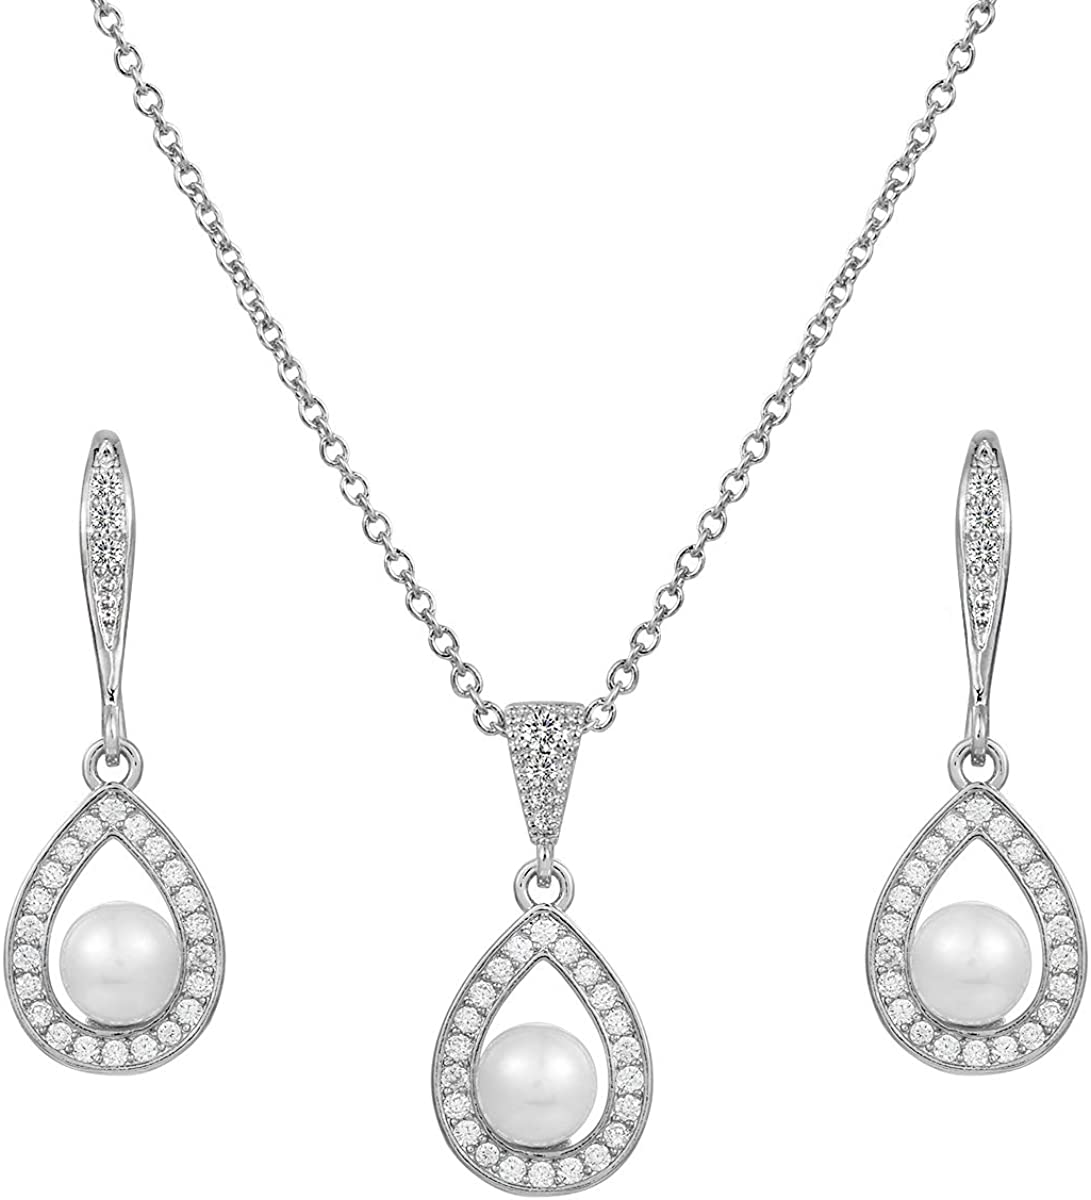 MEEDOZ White Gold/Gold/Rose Gold Plated Women's Clear Cubic Zirconia Simulated Pearl Pear-Shaped Teardrop Pendant Necklace and Dangle Earrings Jewelry Sets for Bridal Wedding, Adjustable Chain